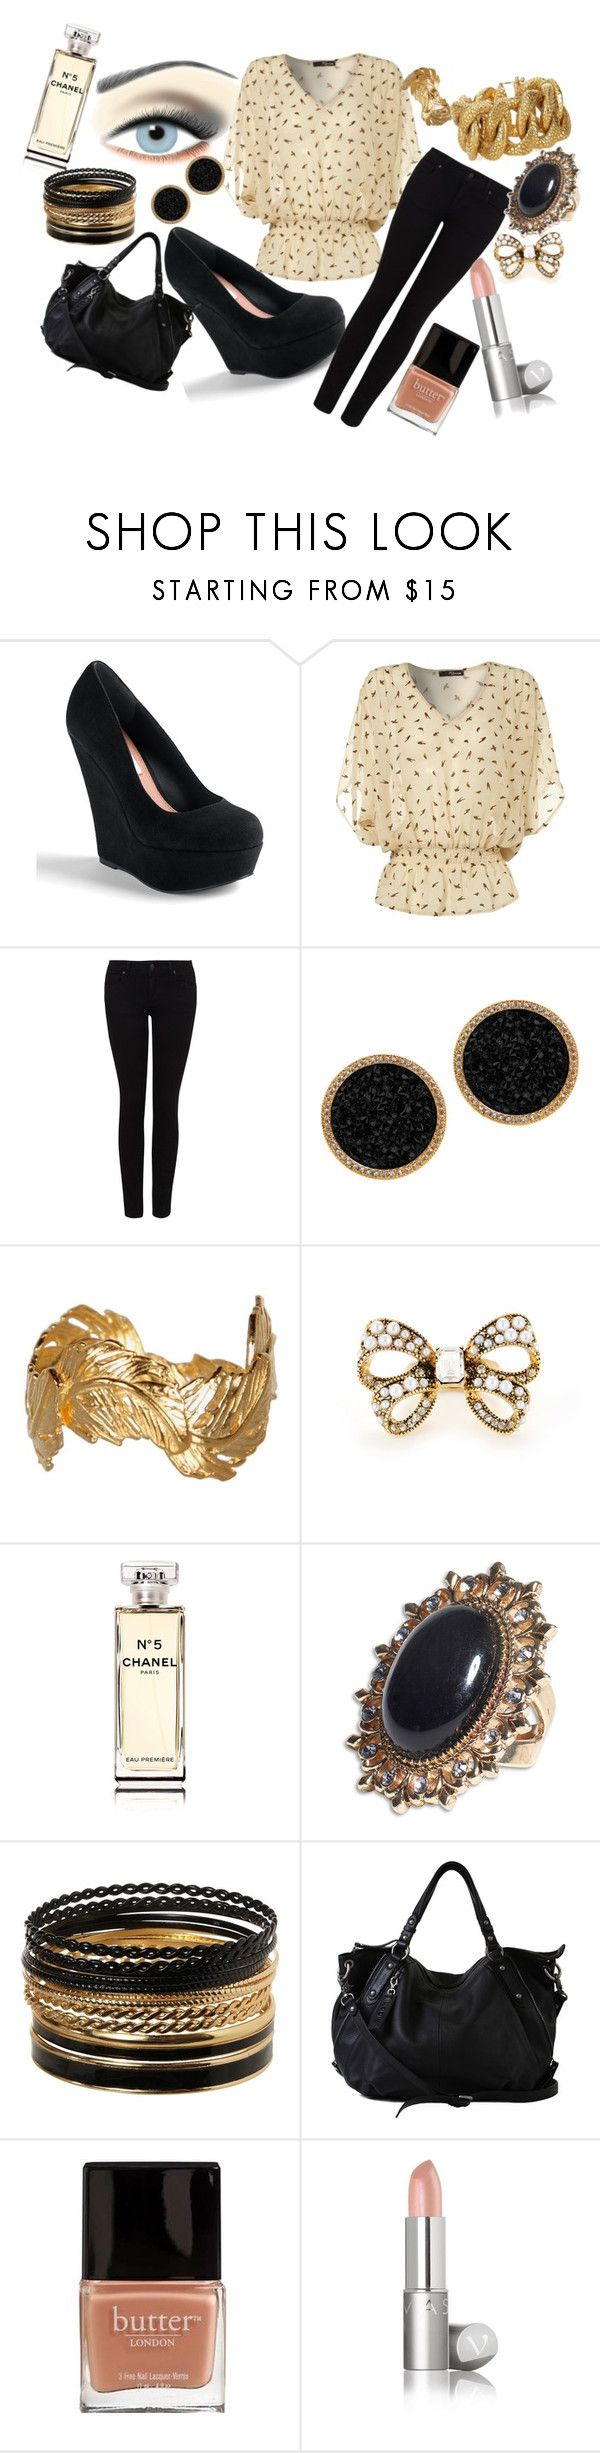 """""""68 ;; Fool like me"""" by hello-olivia ❤ liked on Polyvore featuring Jane Iredale, Steve Madden, Jane Norman, Paige Denim, Sahani, Alex Monroe, Betsey Johnson, Chanel, Yves Saint Laurent and Butter London"""